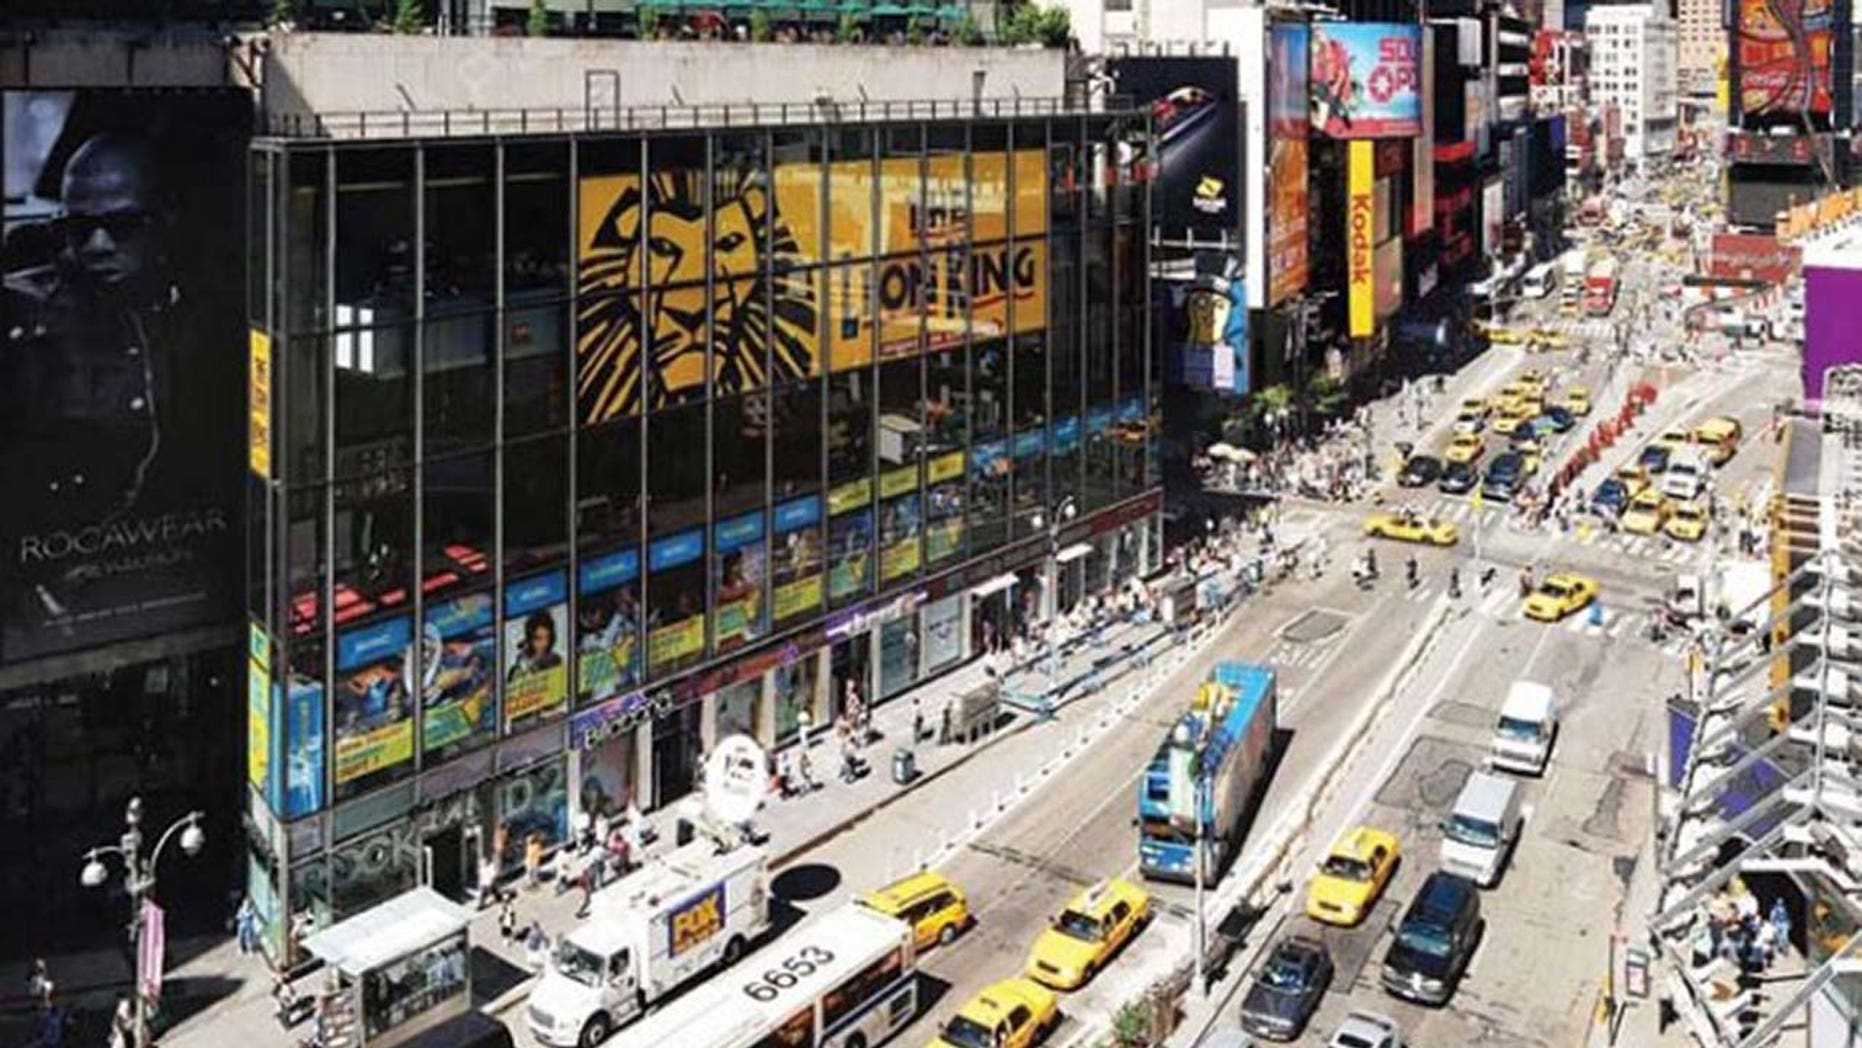 Westlake Legal Group Times-Square Motorcycle backfiring causes panic in Times Square, cops say fox-news/travel/vacation-destinations/new-york-city fnc/us fnc Associated Press article 1dcabce4-a19d-5ab5-b7bf-e9ba1debbb17